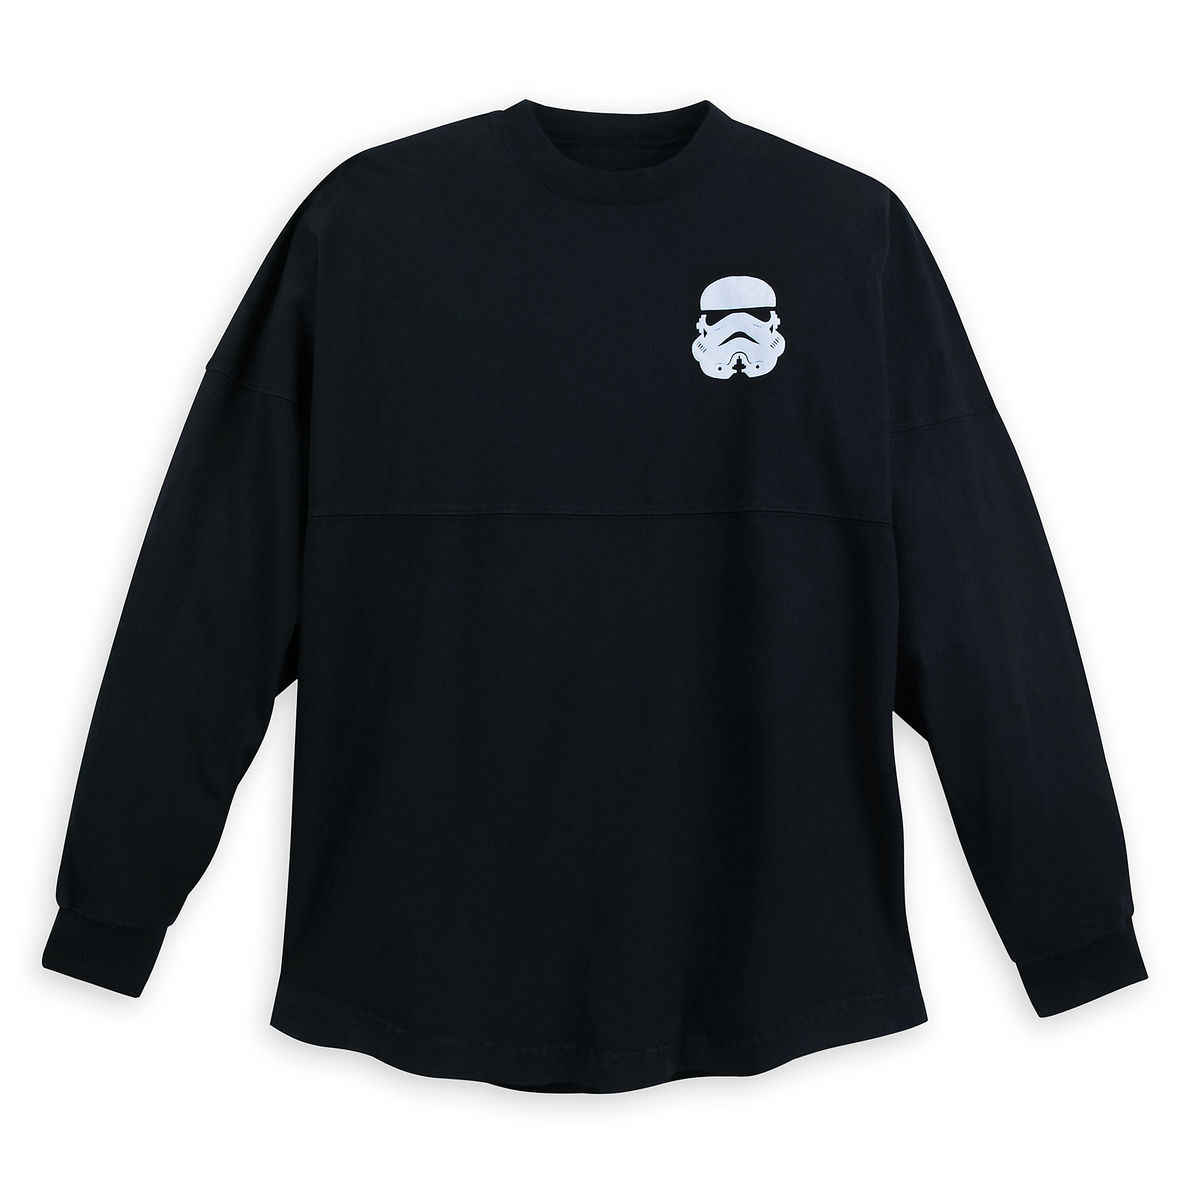 Product Image of Stormtrooper Spirit Jersey for Adults   1 65cd0c38c